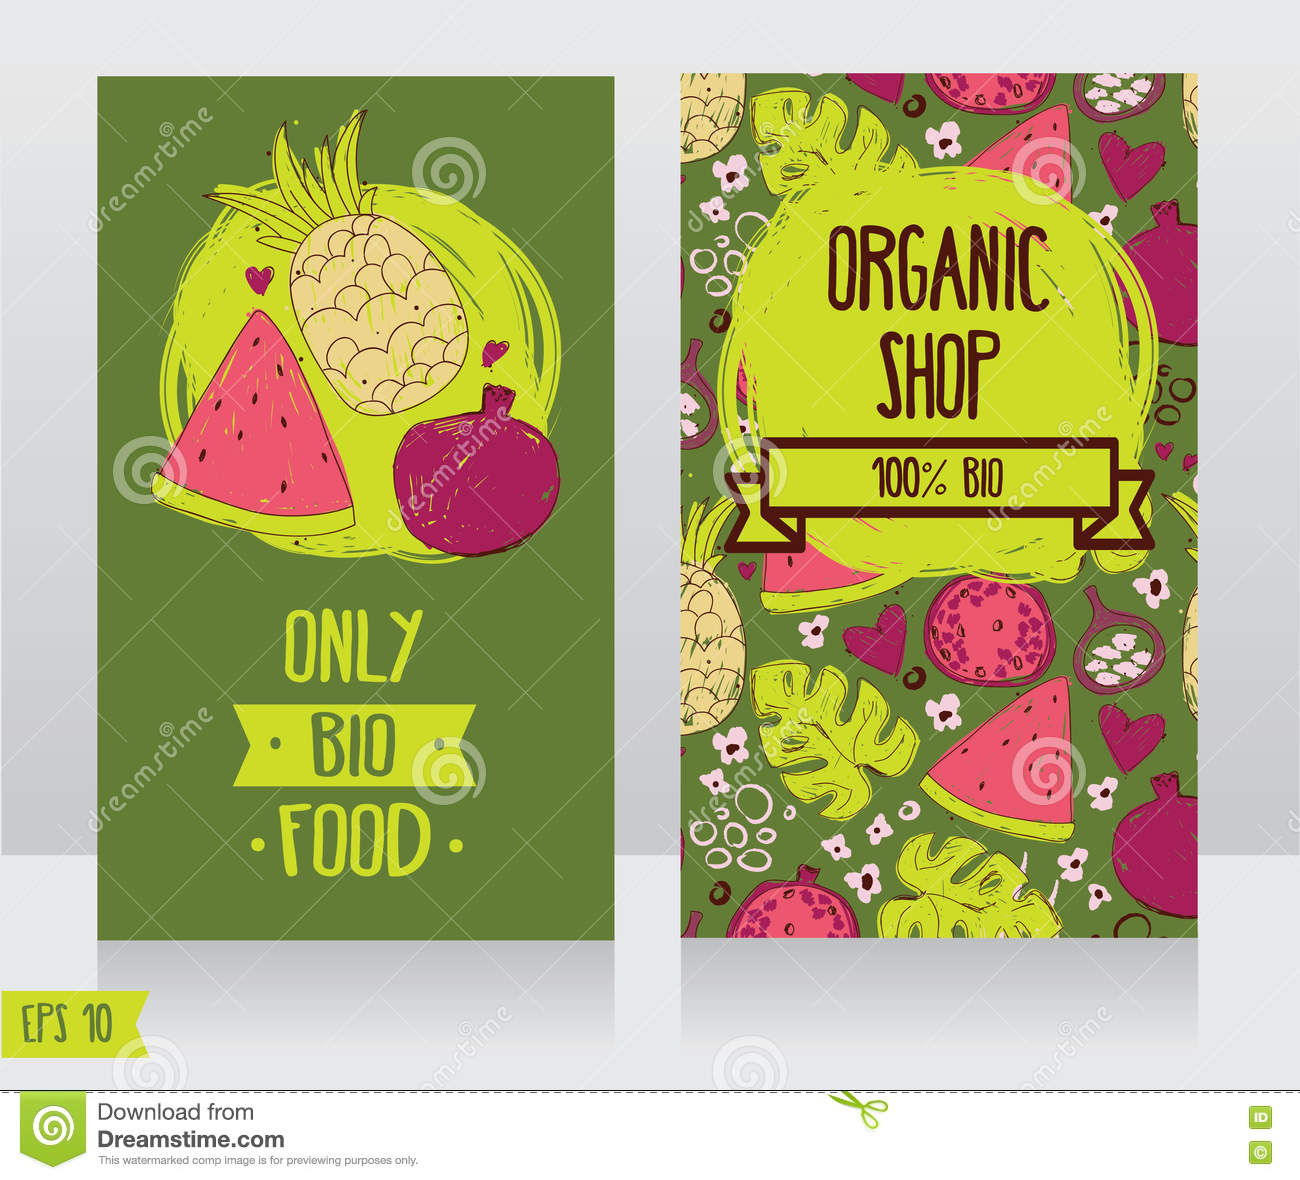 Business cards template for organic foods shop or vegan cafe stock business cards template for organic foods shop or vegan cafe cheaphphosting